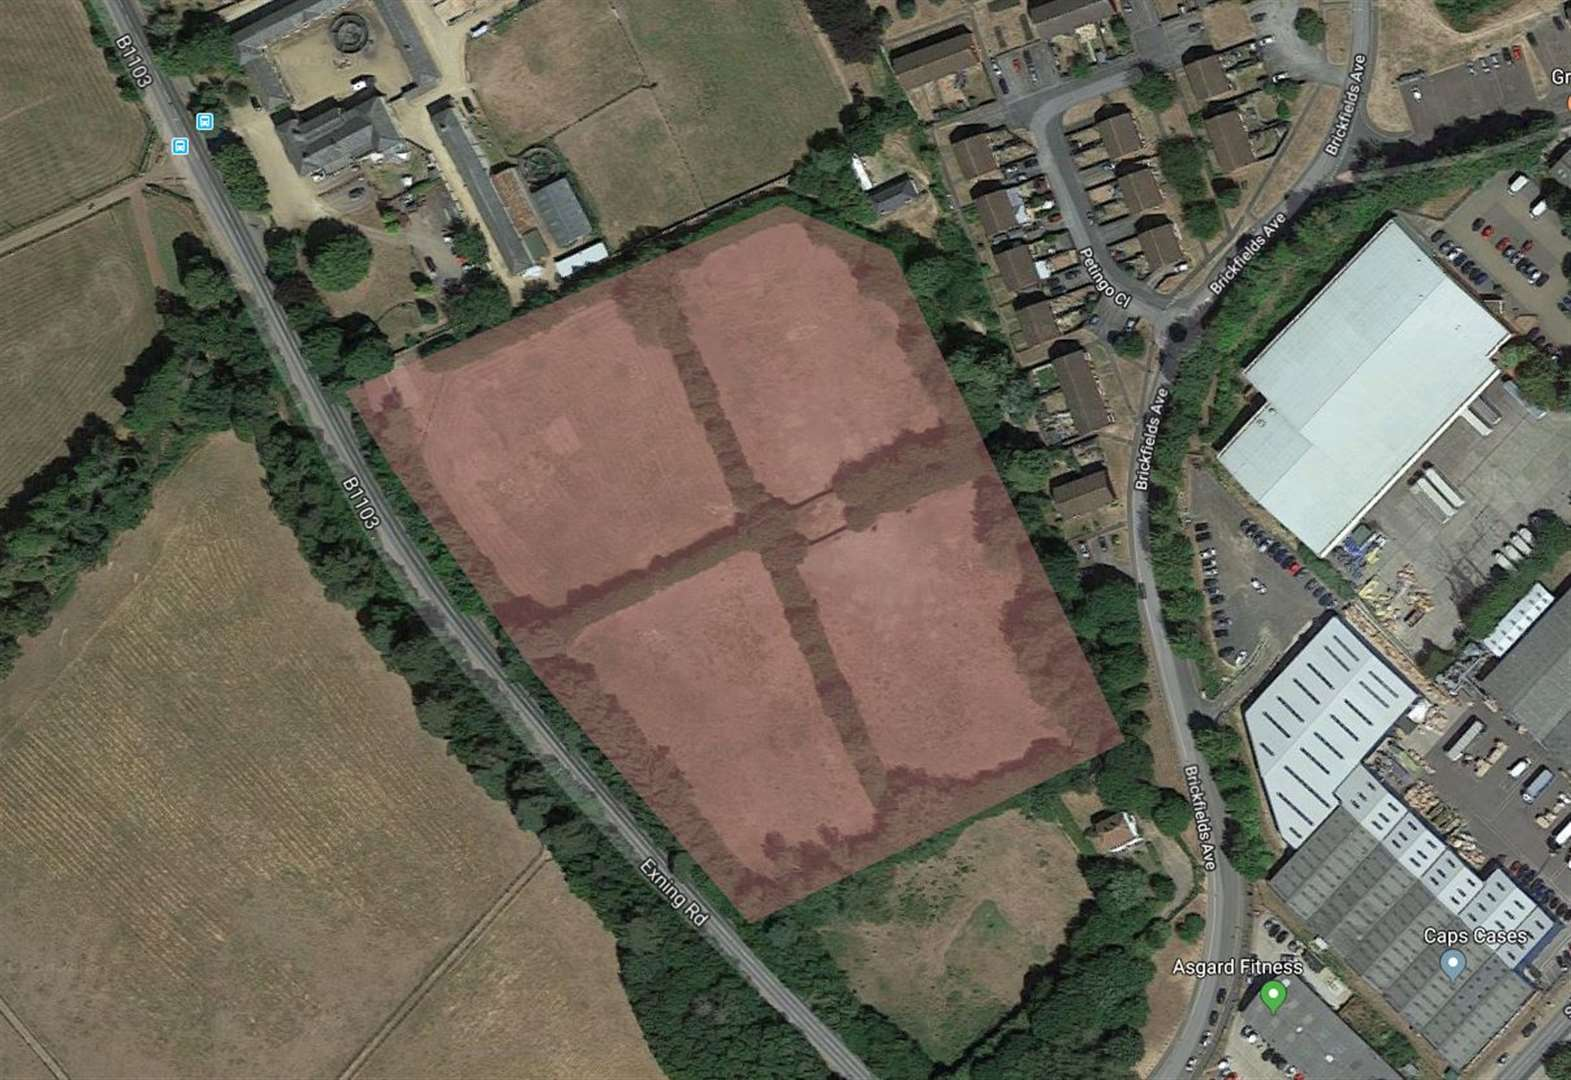 Planners delay decision on 79 home estate in Newmarket's Exning Road